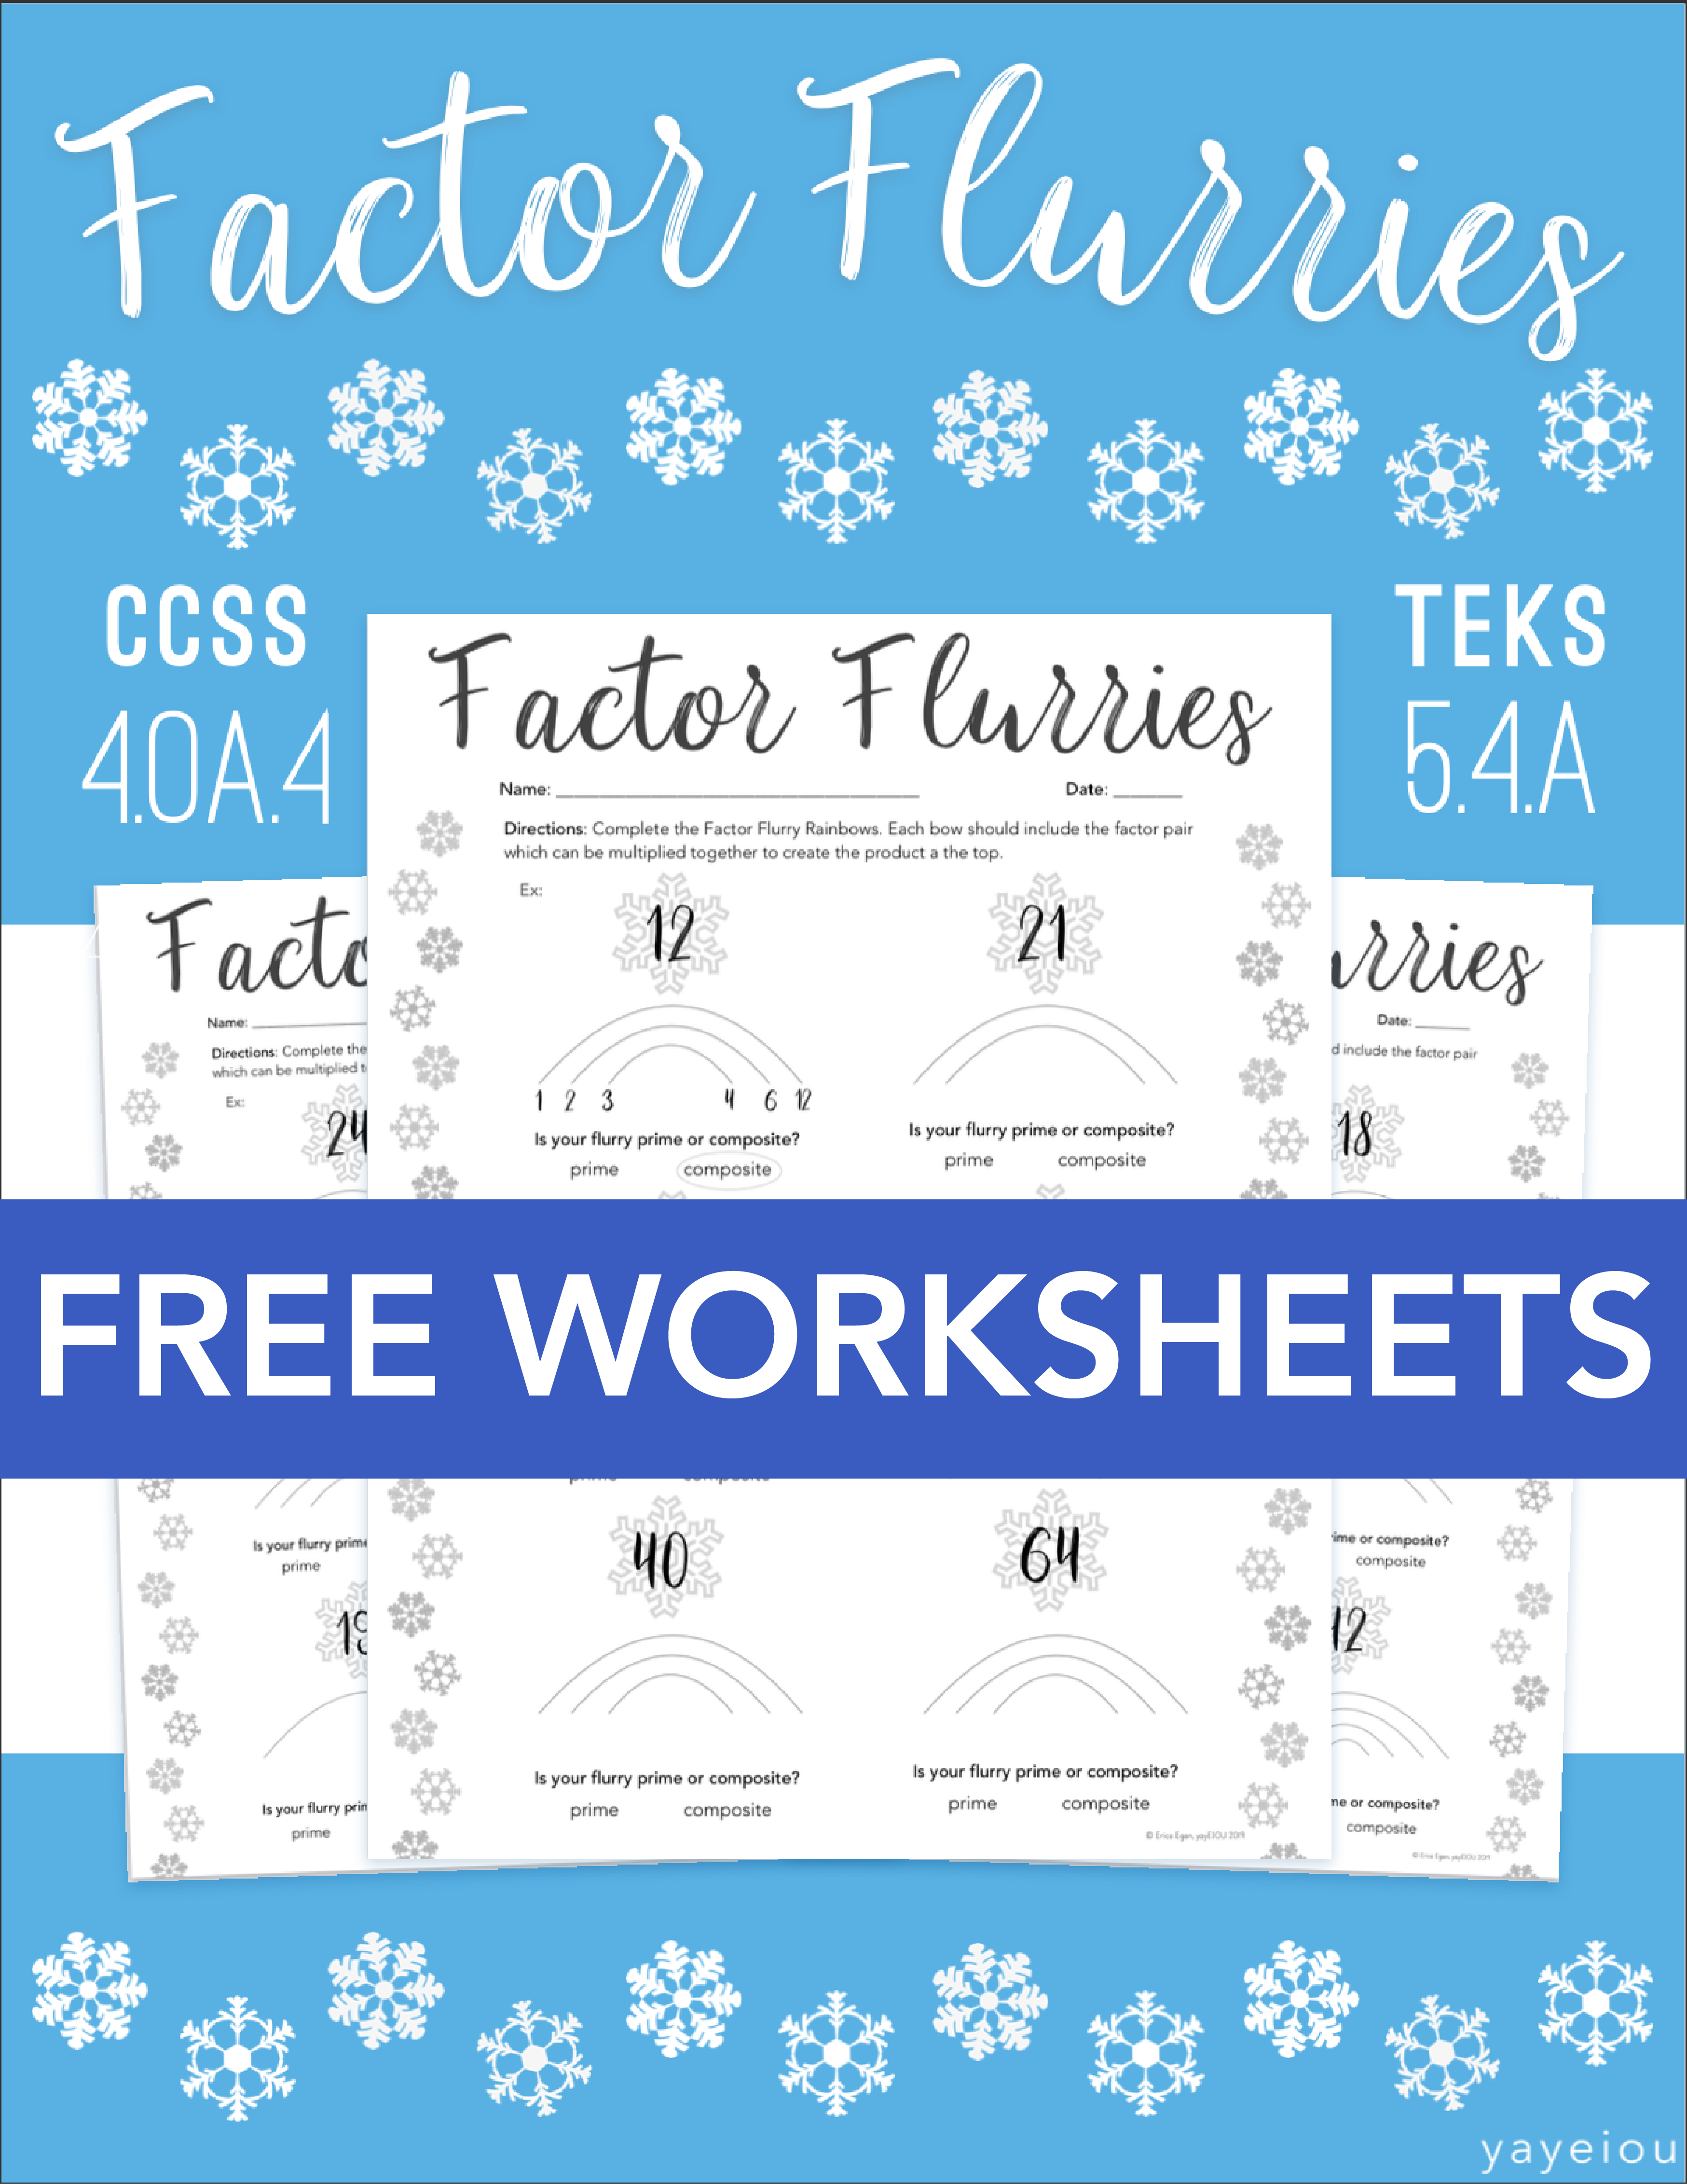 Free 4 Oa 4 Worksheets In